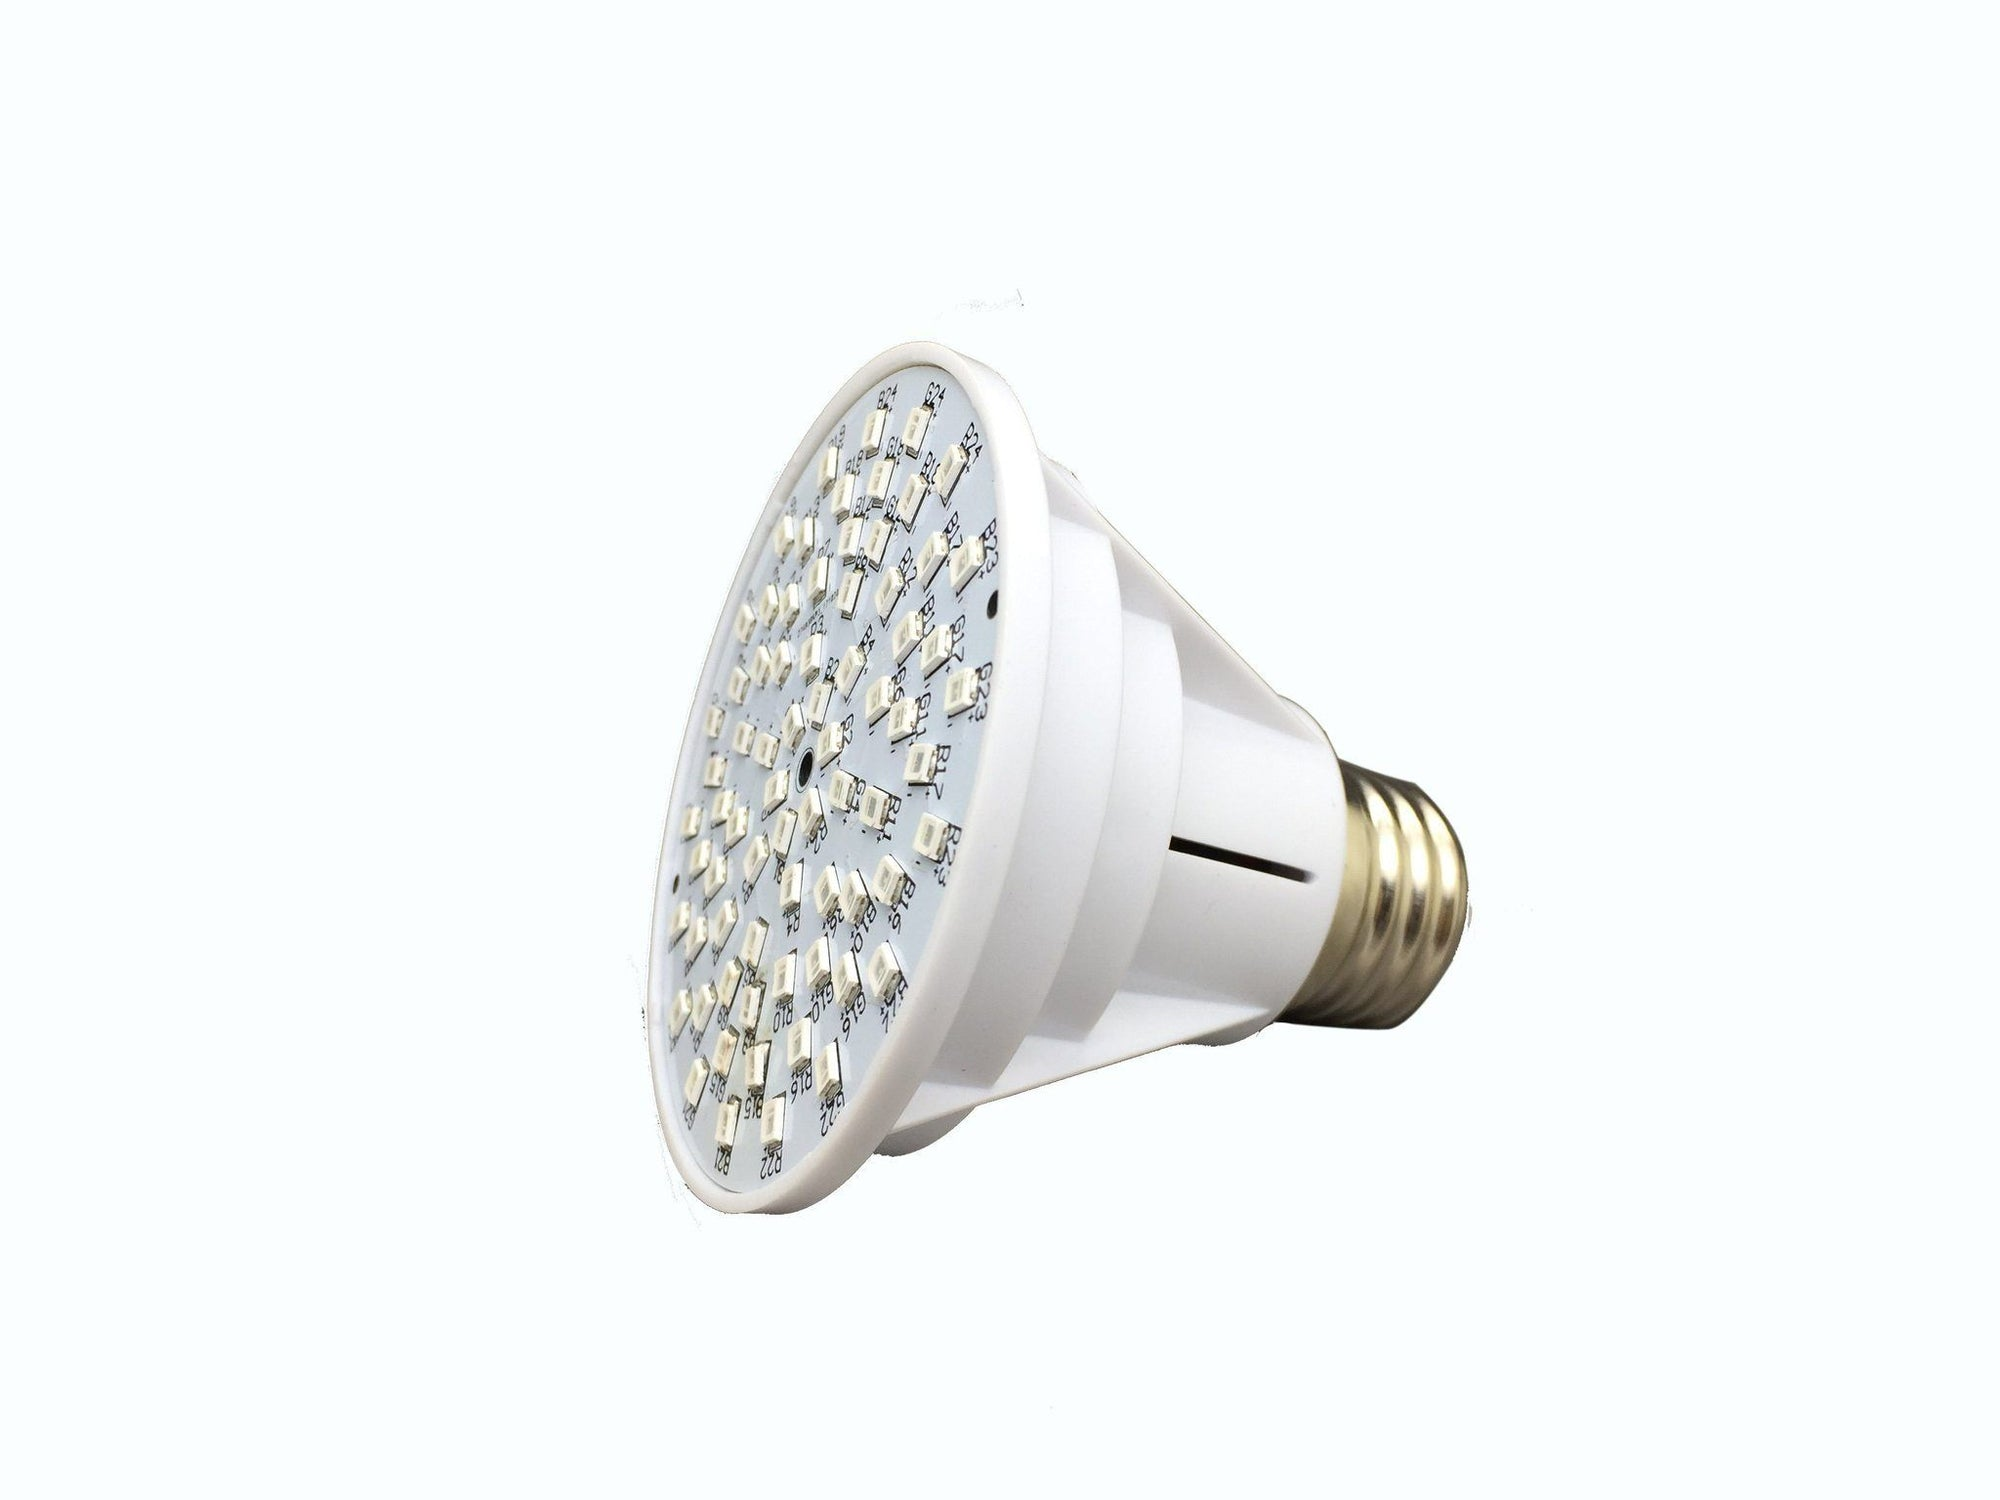 Pool Tone Pure WHITE LED SPA Bulb 12VAC for Hayward Pentair Fixture Home & Garden > Lighting > Light Bulbs Pentair